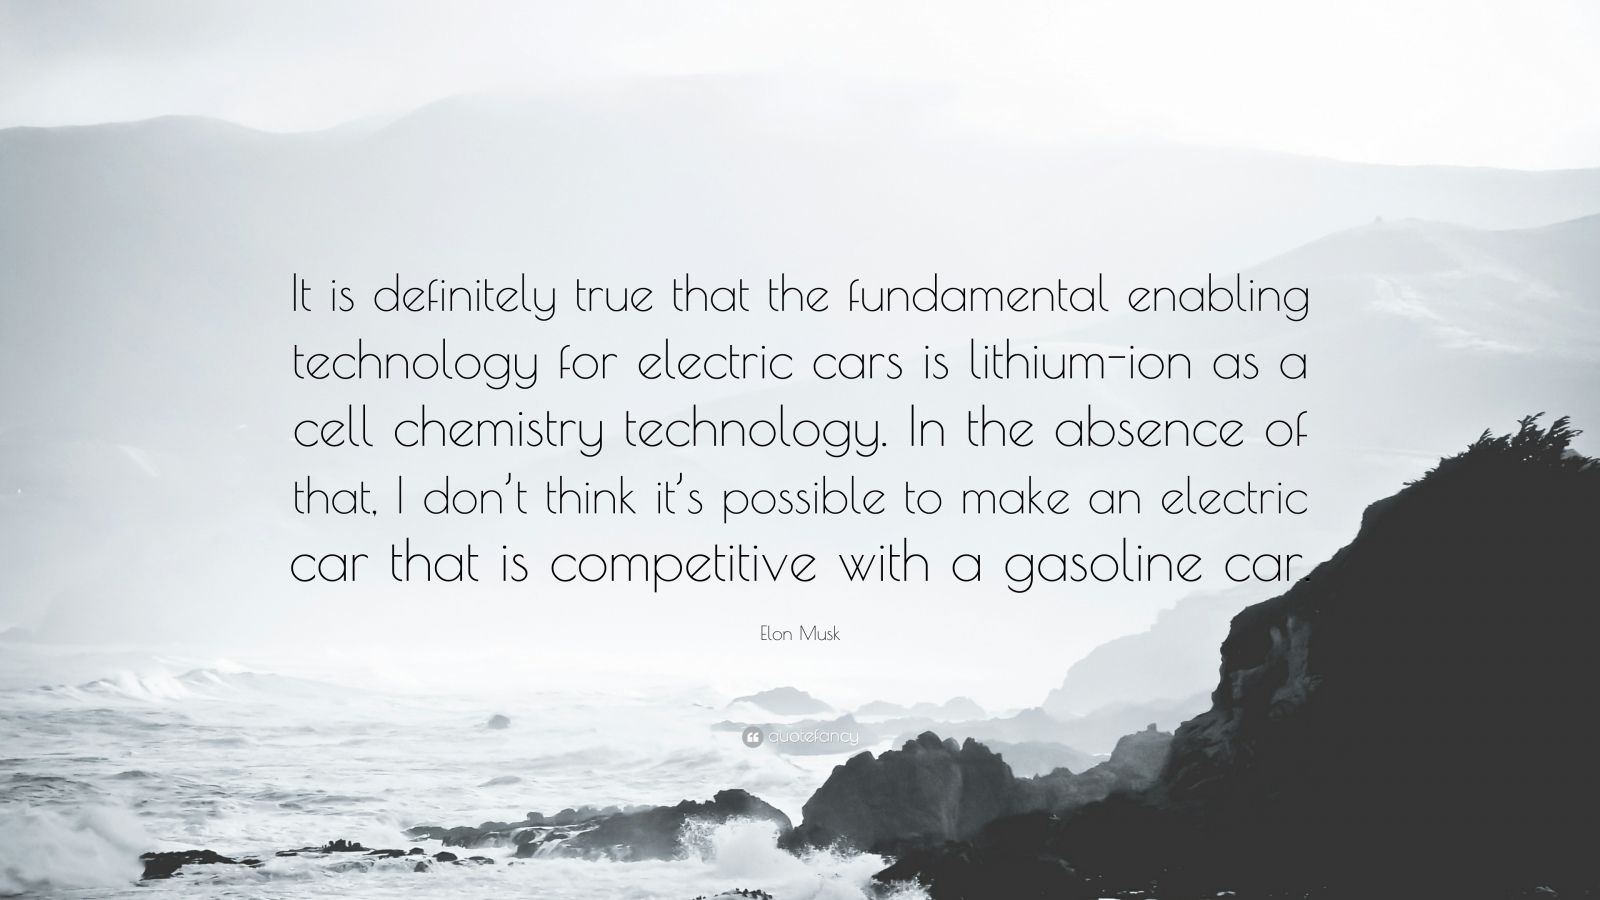 """Elon Musk Quote: """"It is definitely true that the fundamental enabling technology for electric cars is lithium-ion as a cell chemistry technology. In the absence of that, I don't think it's possible to make an electric car that is competitive with a gasoline car."""""""